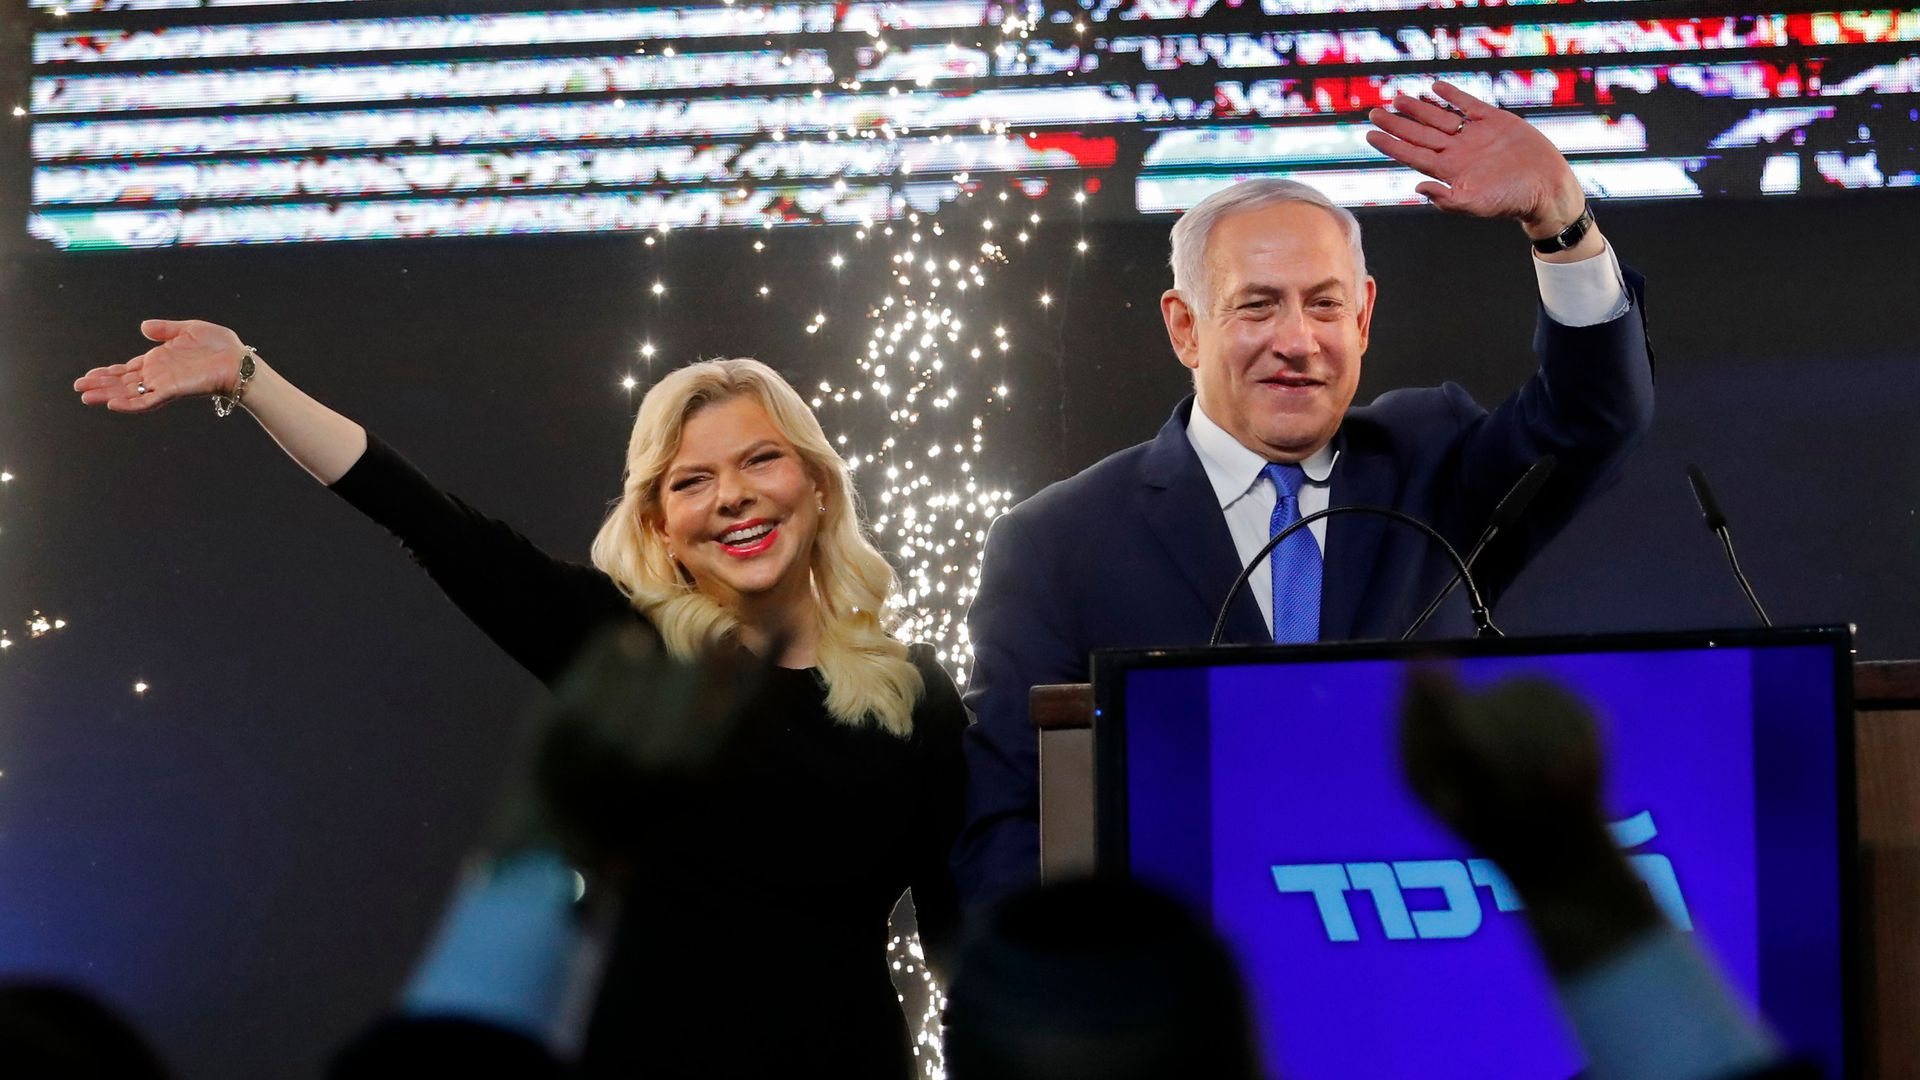 Benjamin Netanyahu and his wife, Sara, on stage before supporters